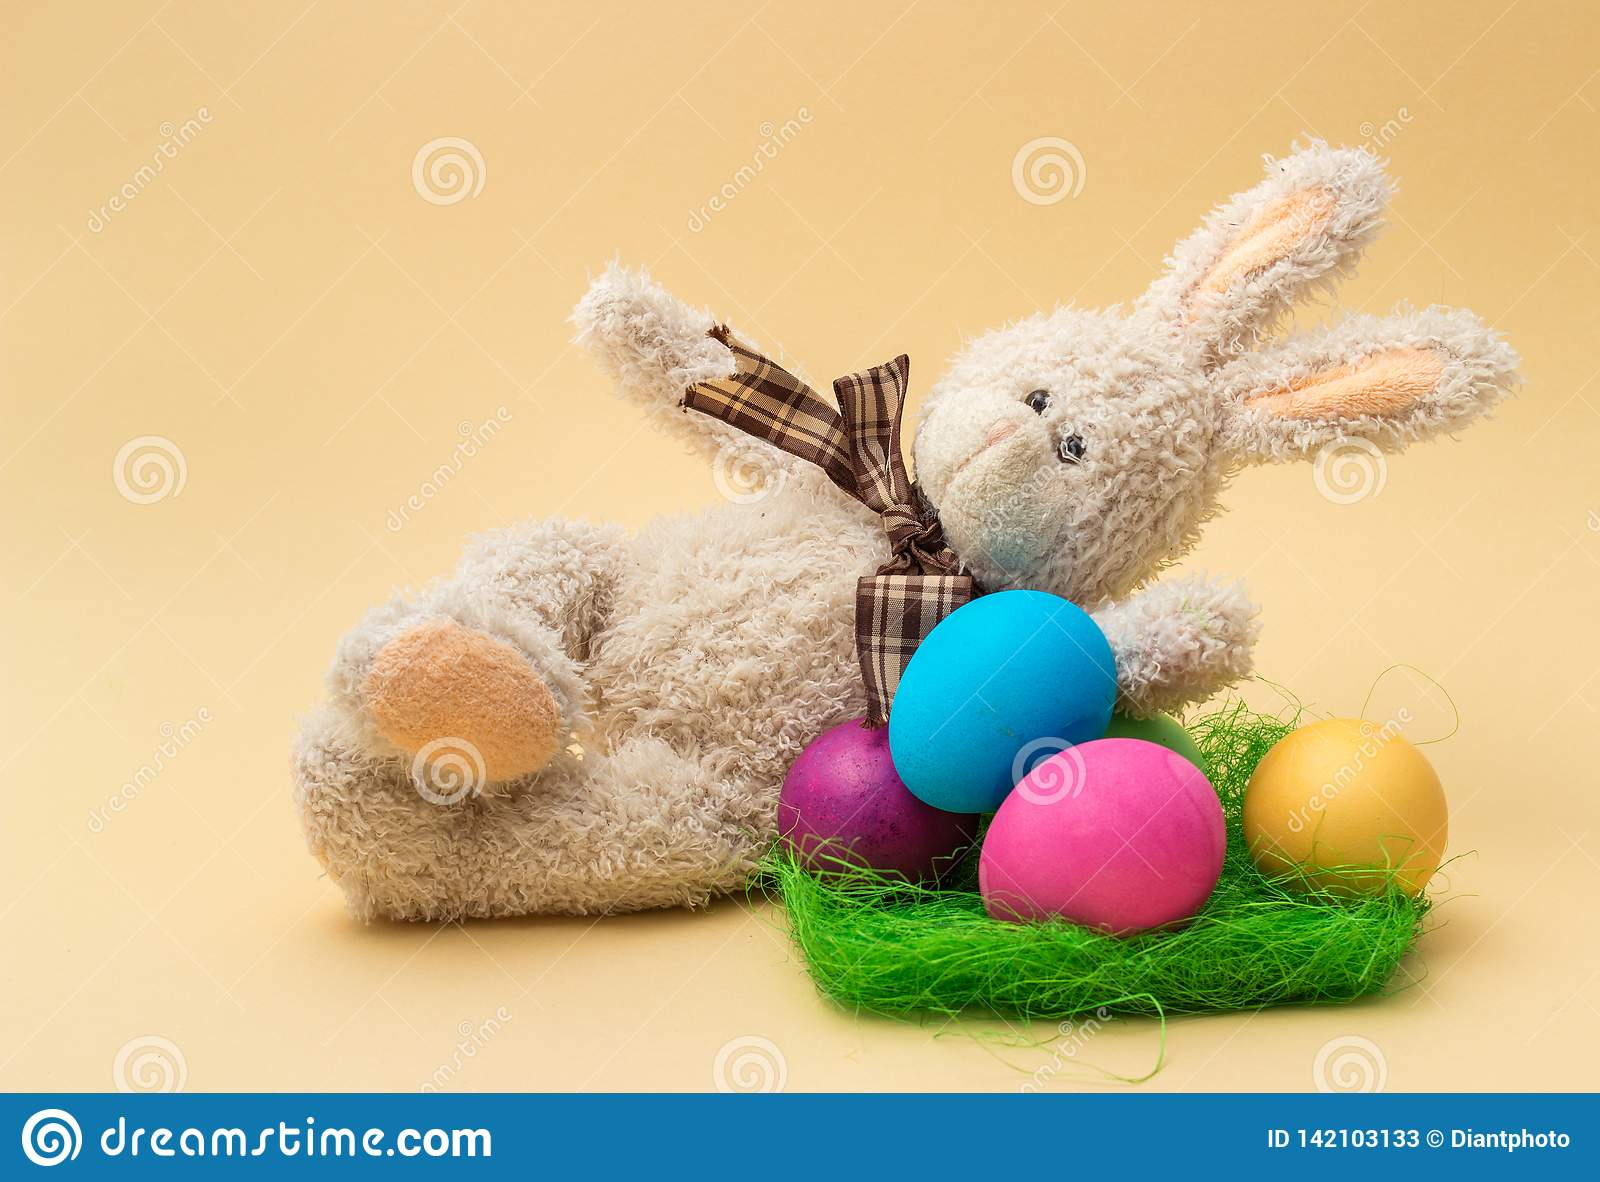 Handmade Bunny and Easter Colored Eggs. Beige background.